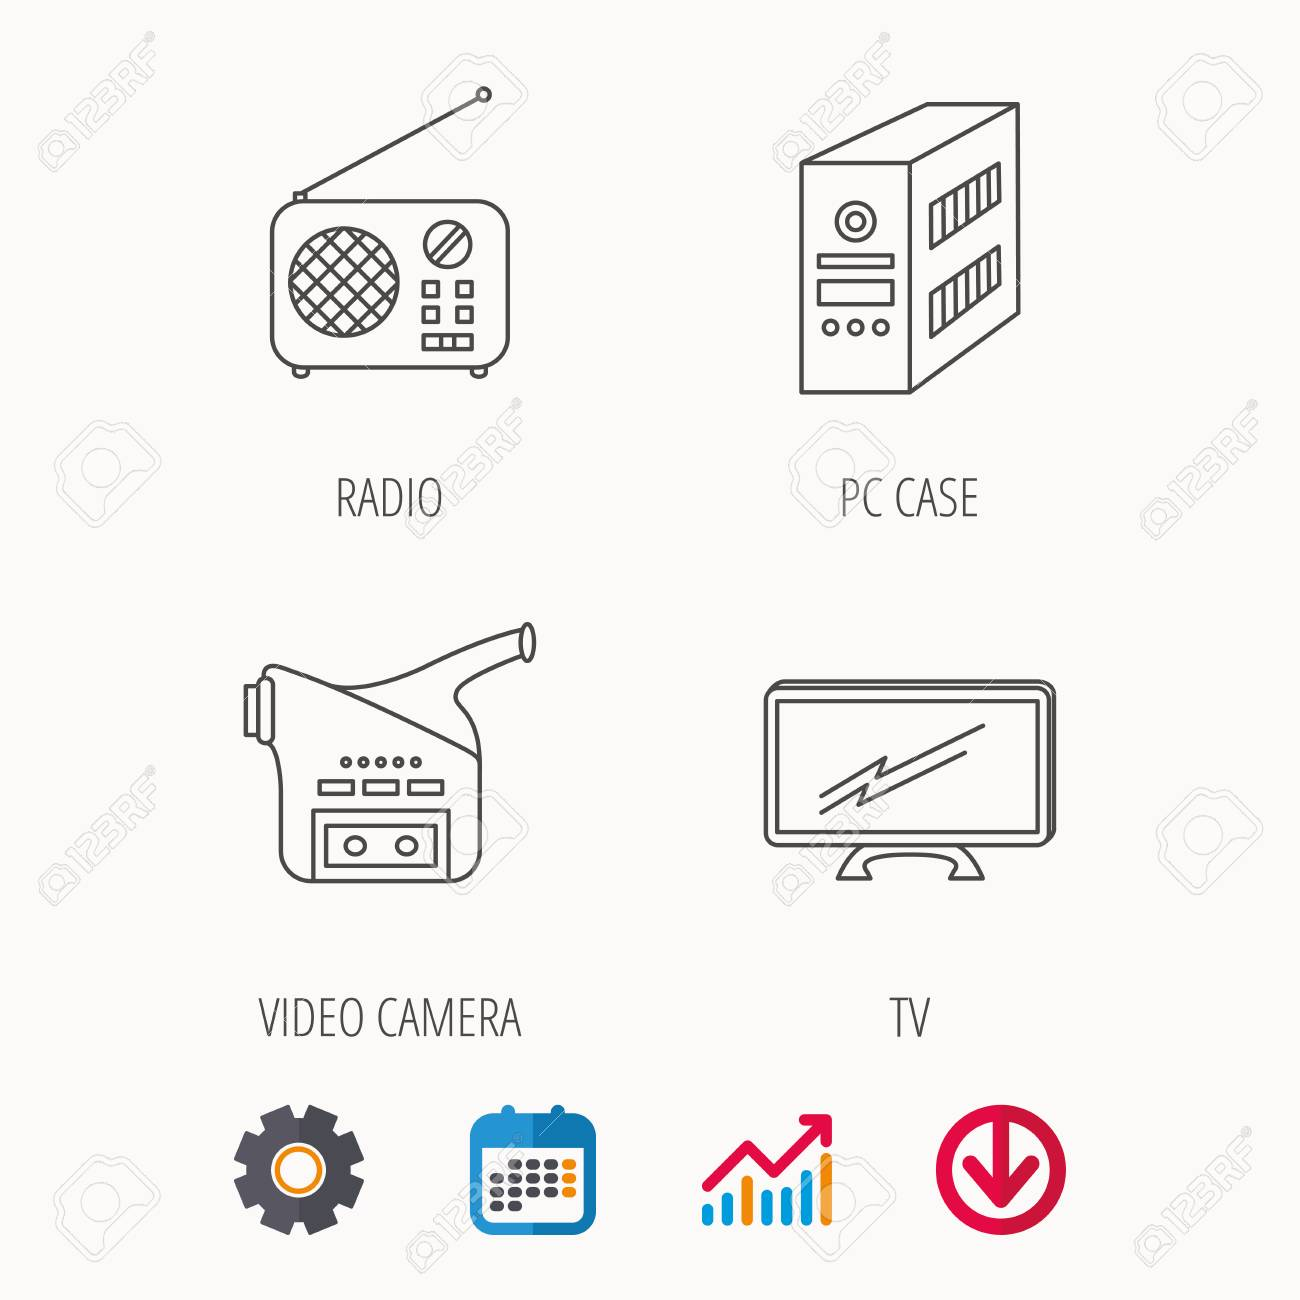 Radio, TV and video camera icons  PC case linear sign  Calendar,